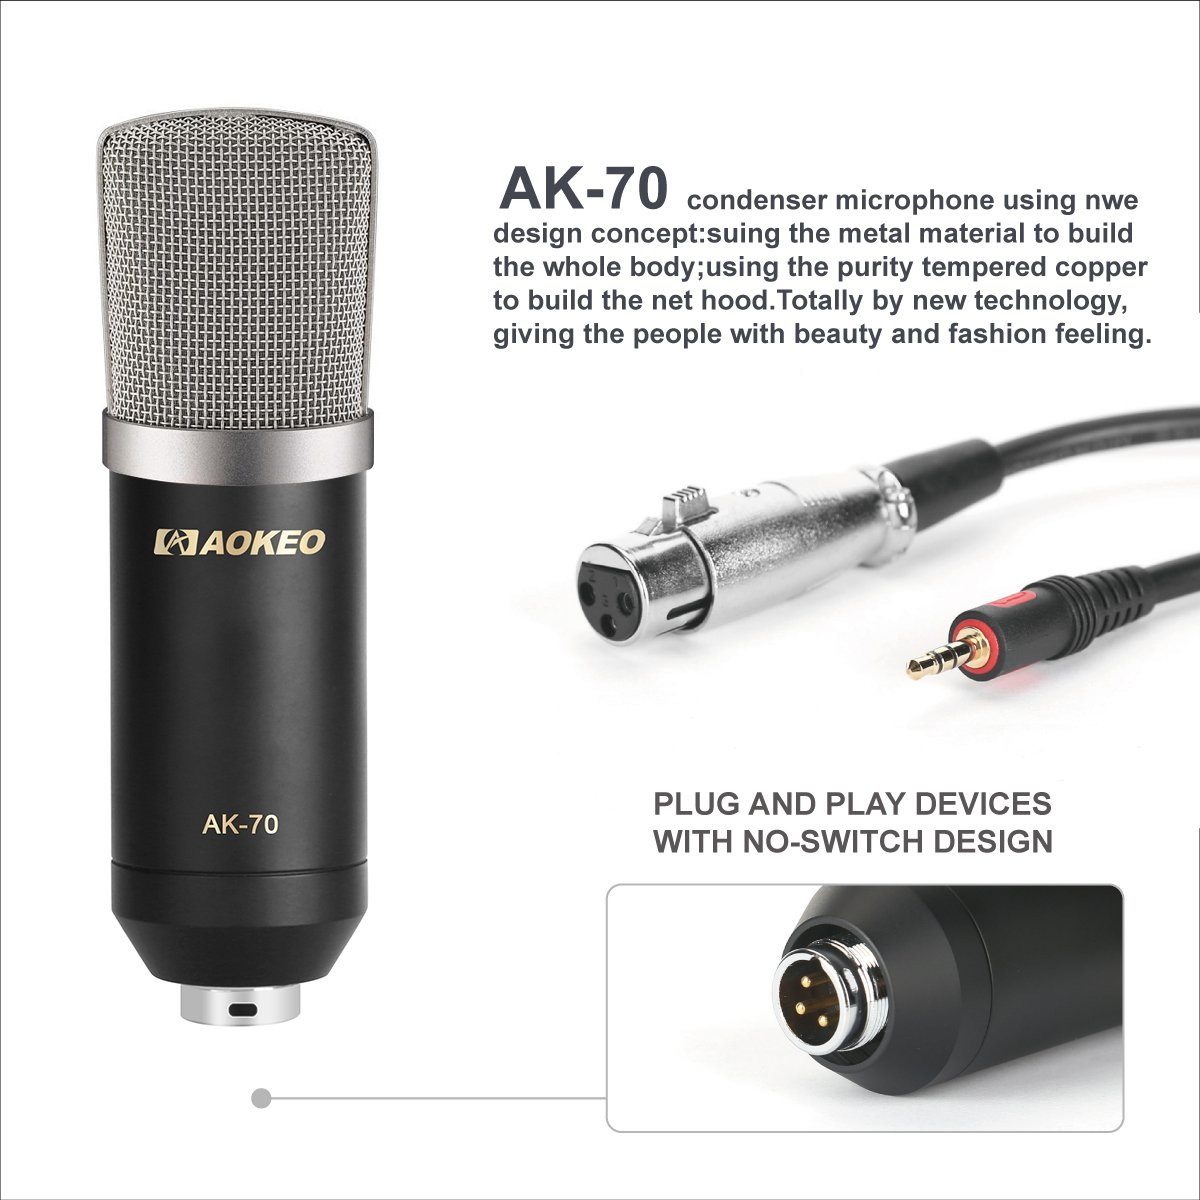 Aokeo AK-70 Professional Studio Live Stream Broadcasting Recording Condenser Microphone With AK-35 Suspension Scissor Arm Stand, Shock Mount, Pop Filter, USB Sound Card and Mounting Clamp by aokeo